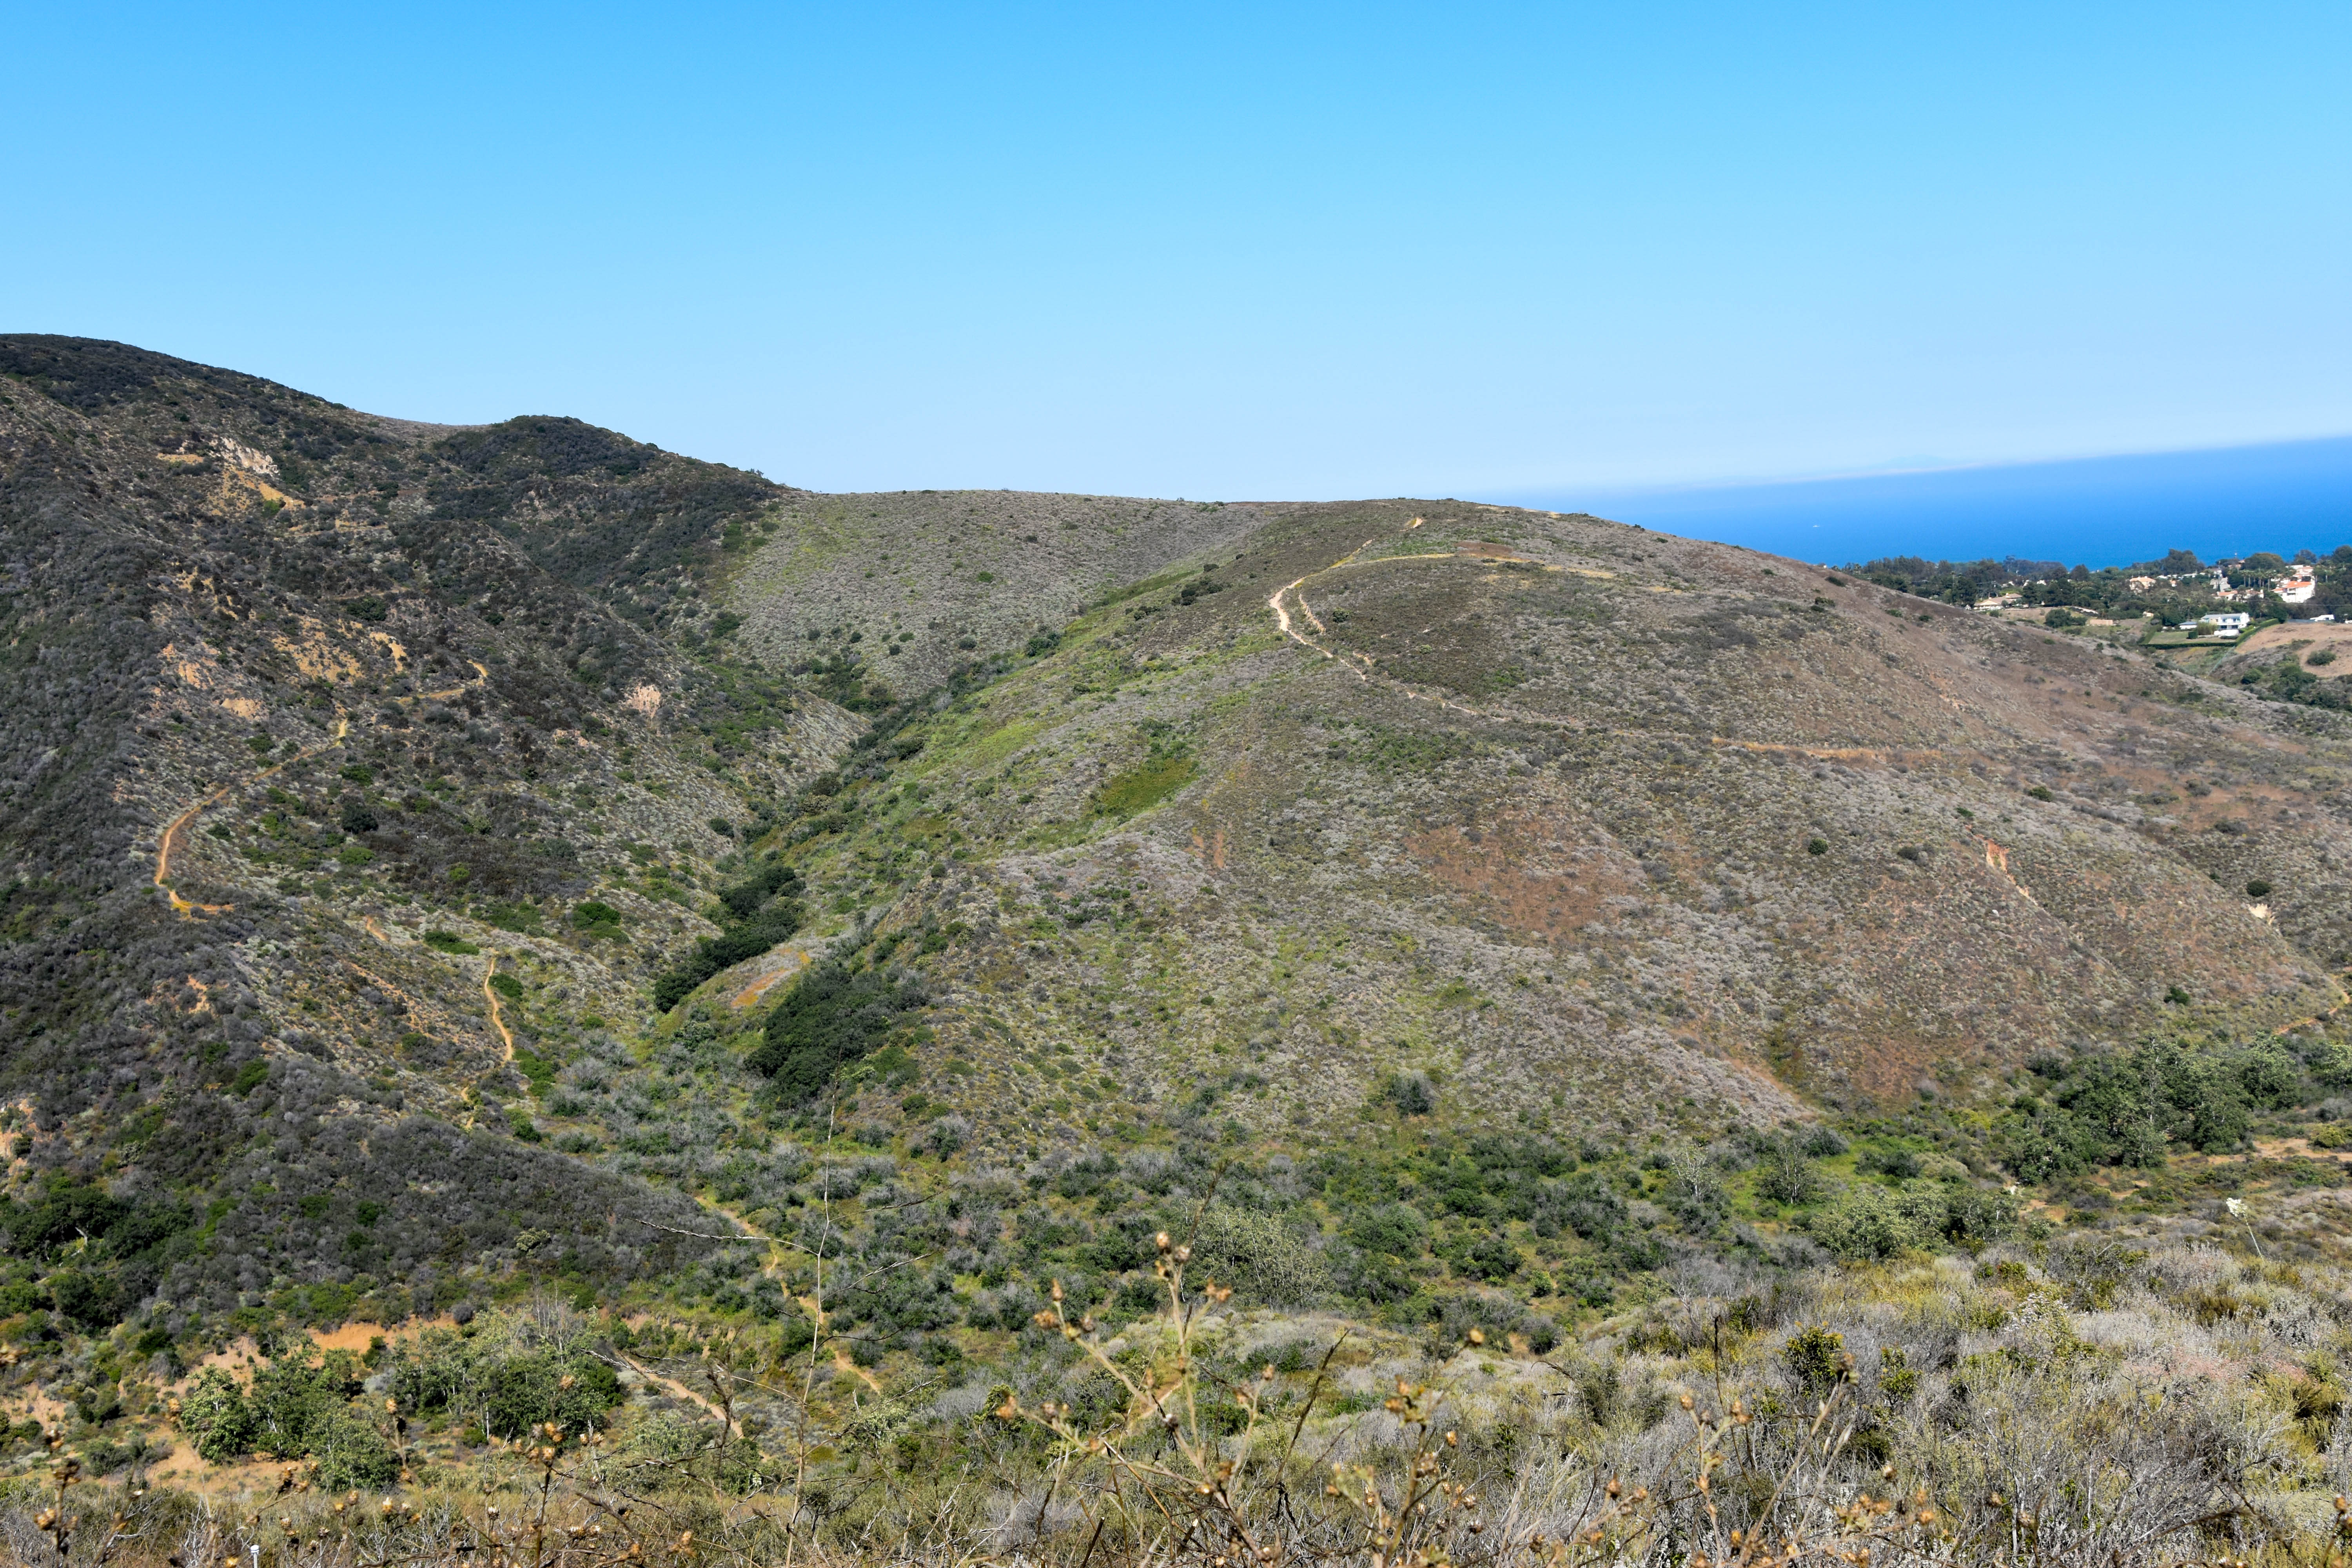 From The Main Road There Are A Couple Of Signed Fire Roads Which Break East And West I Stayed On North South Zuma Ridge Trail All Way